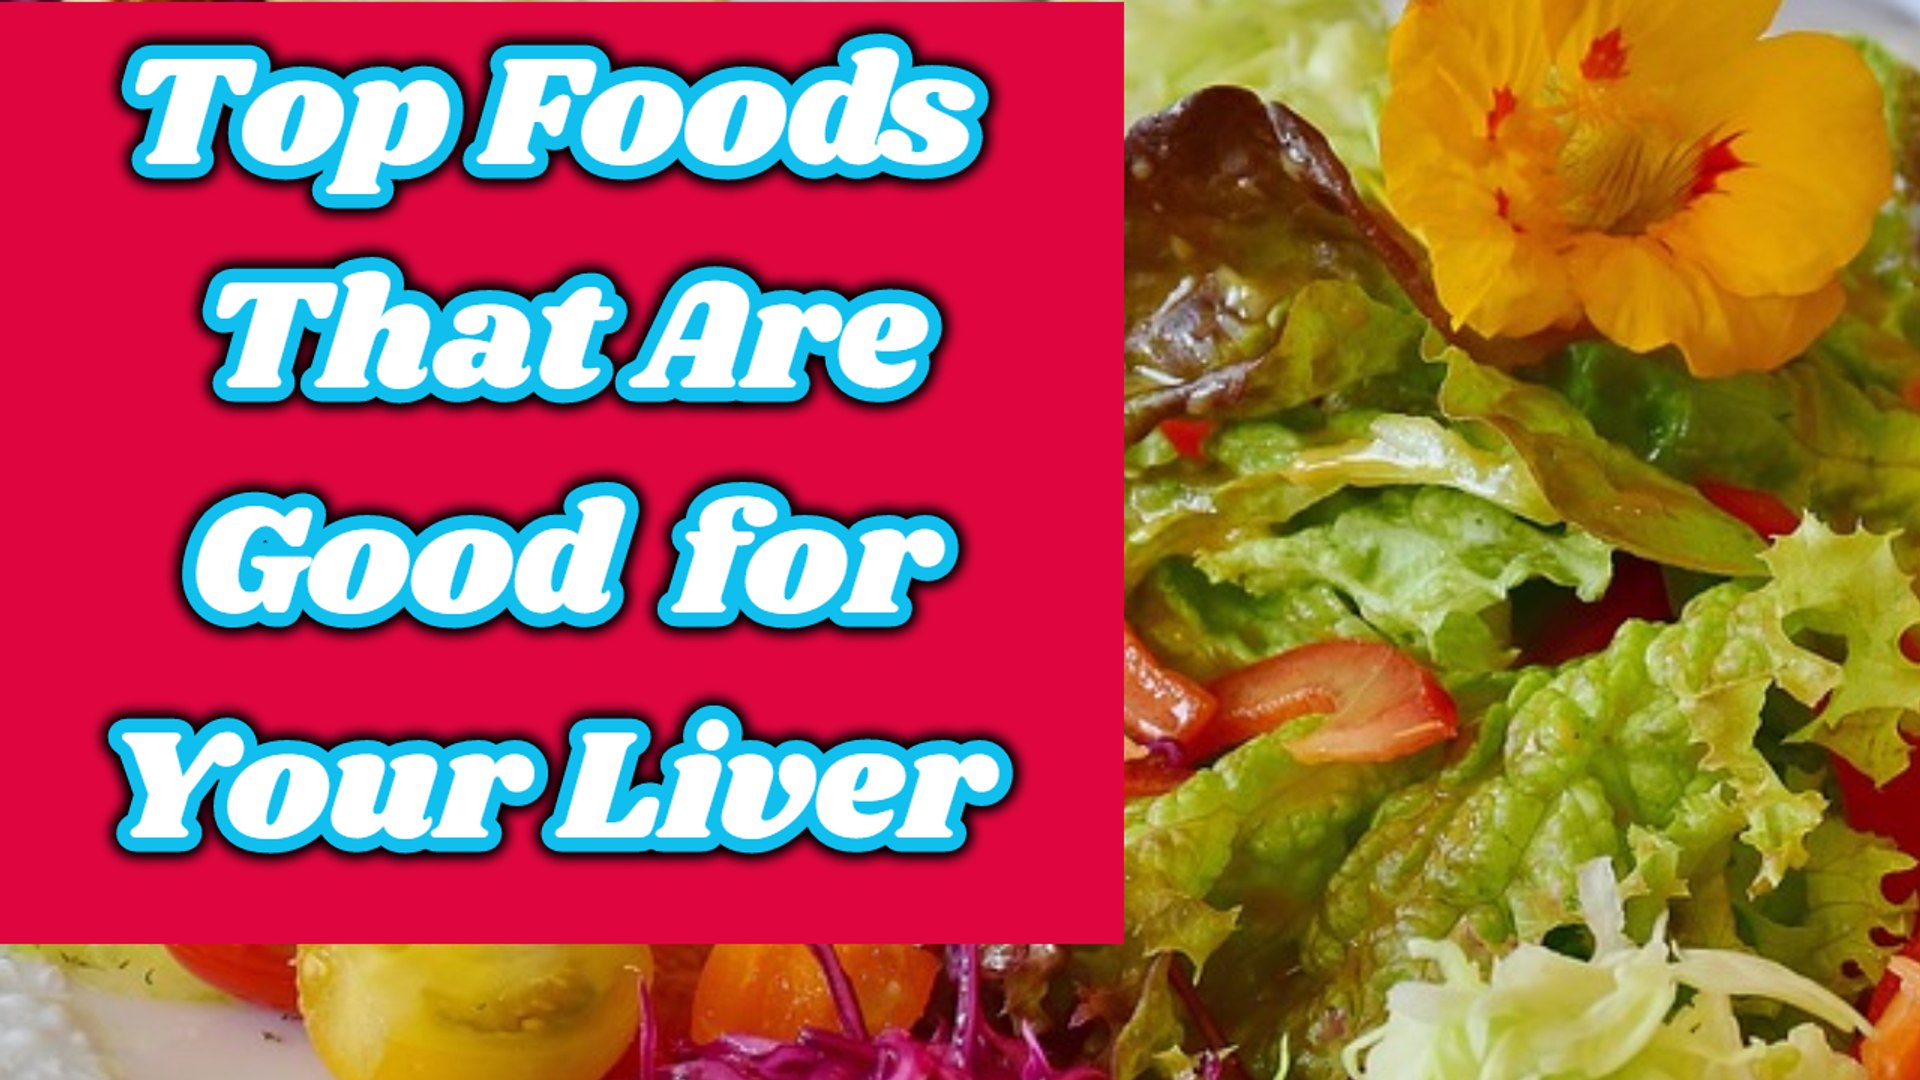 11 Foods That Are Good For Your Liver Foods That Help Keep Your Liver Healthy Liver Diet Tips Video Dailymotion